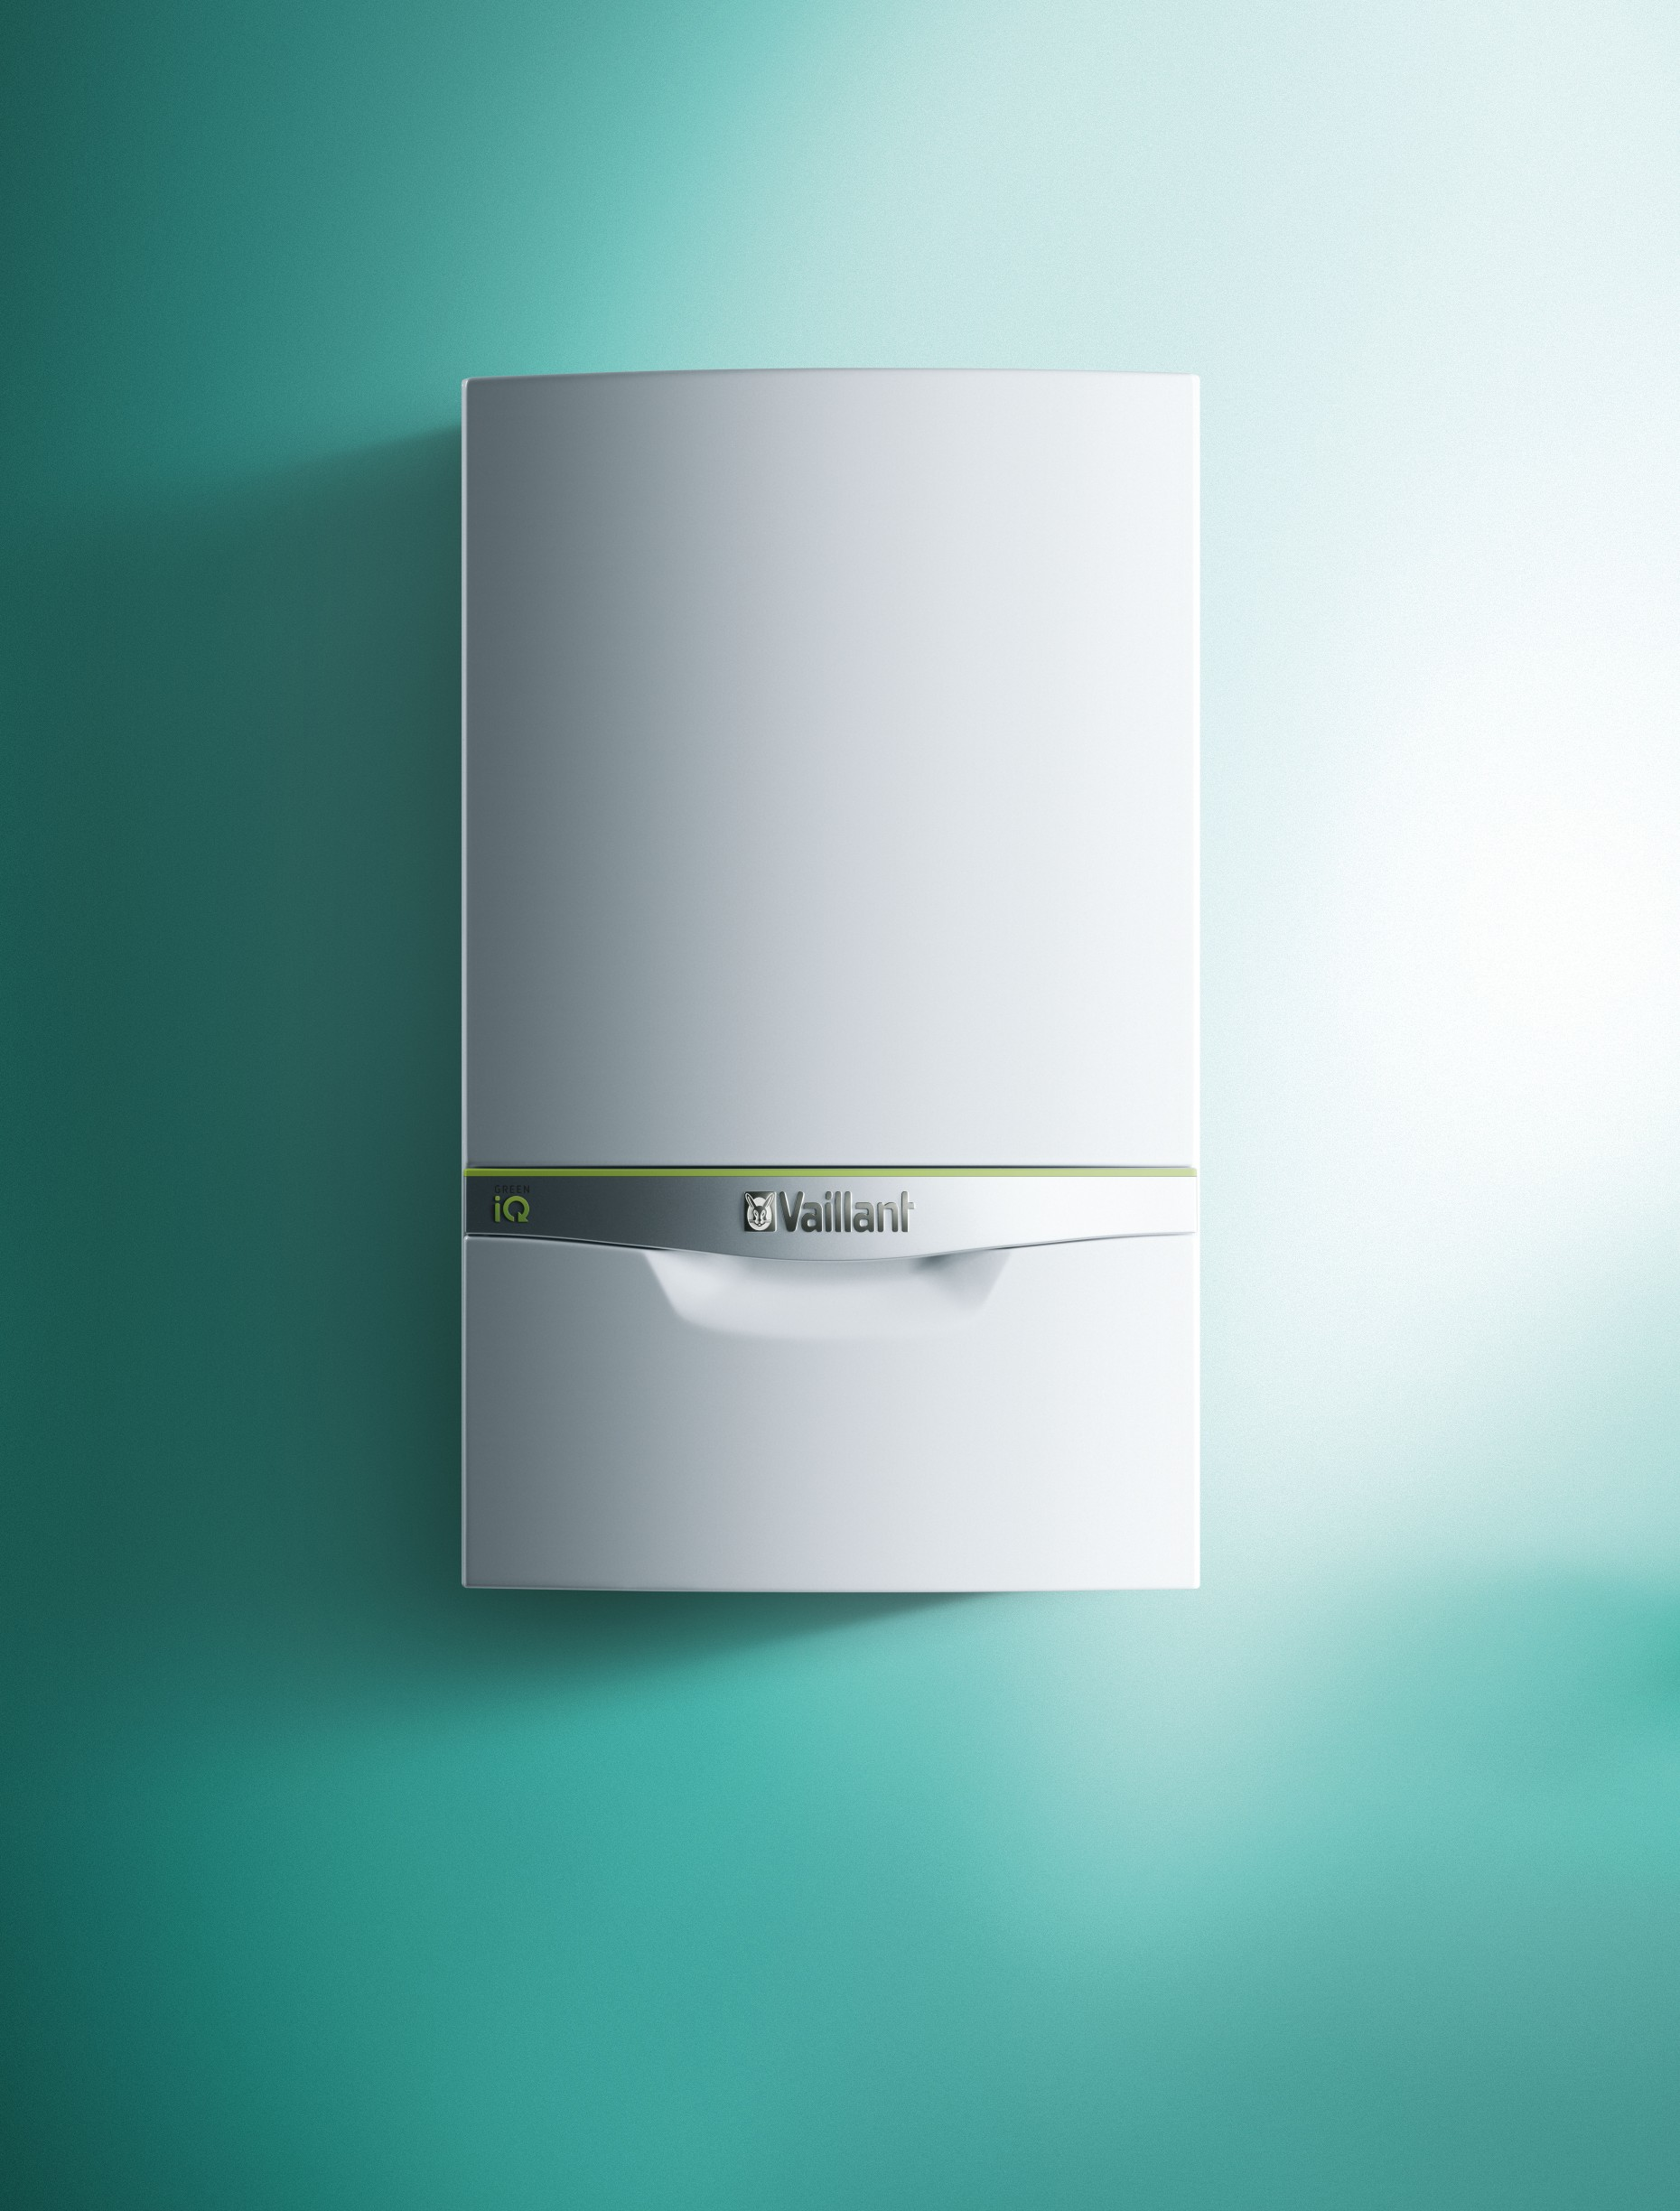 Vaillant VU 276/5-5 ecoTEC exclusive